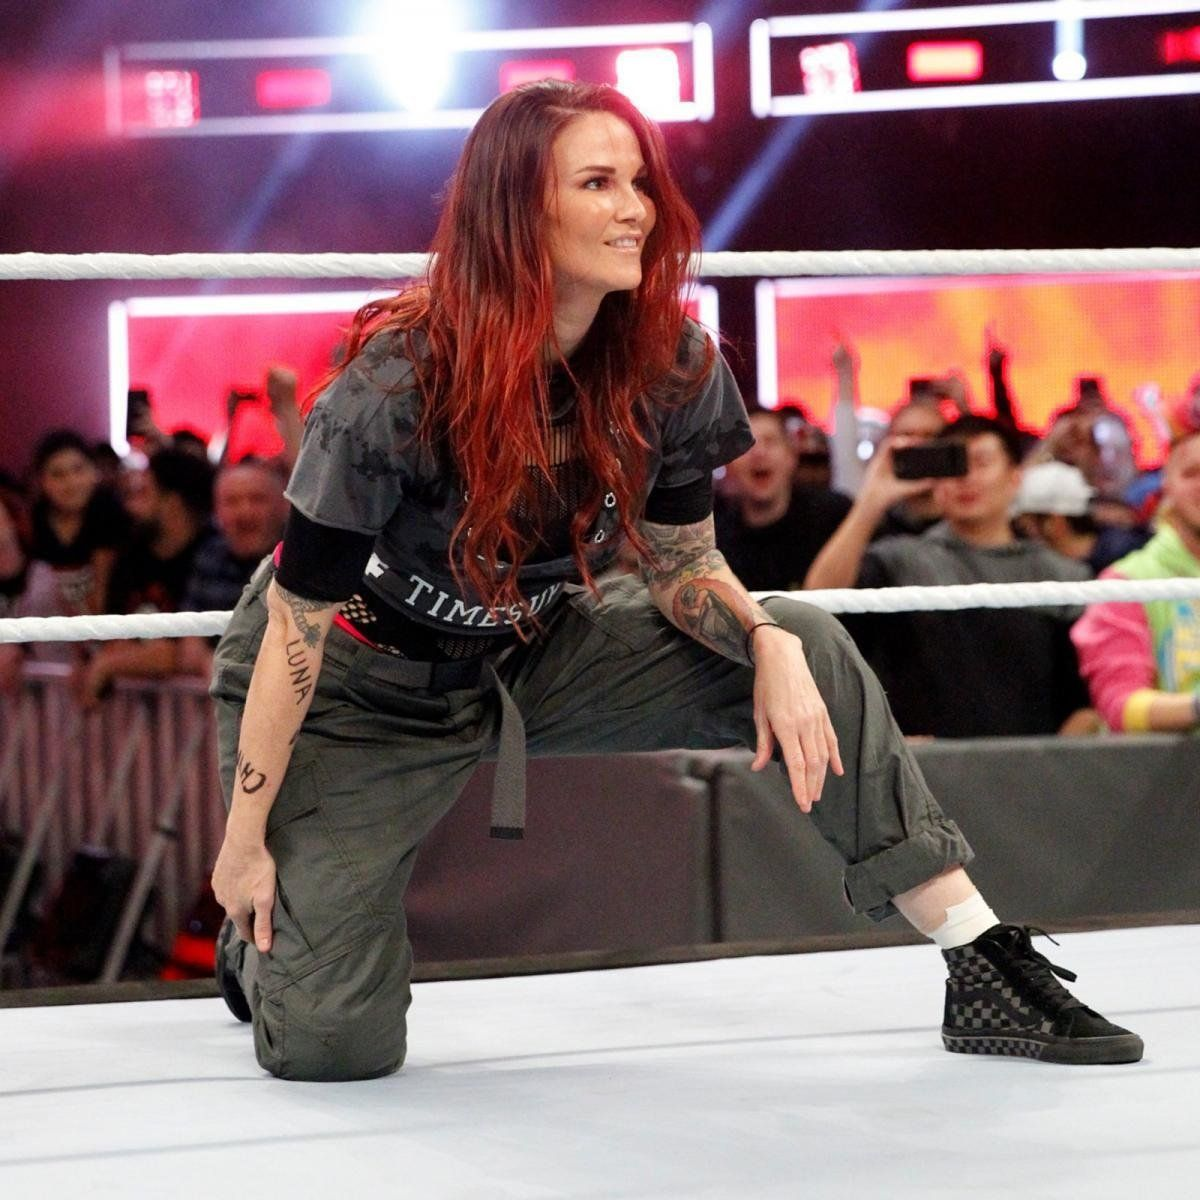 Lita (real name Amy Dumas) wore a shirt emblazoned with #TimesUp to the first-ever women's Royal Rumble match